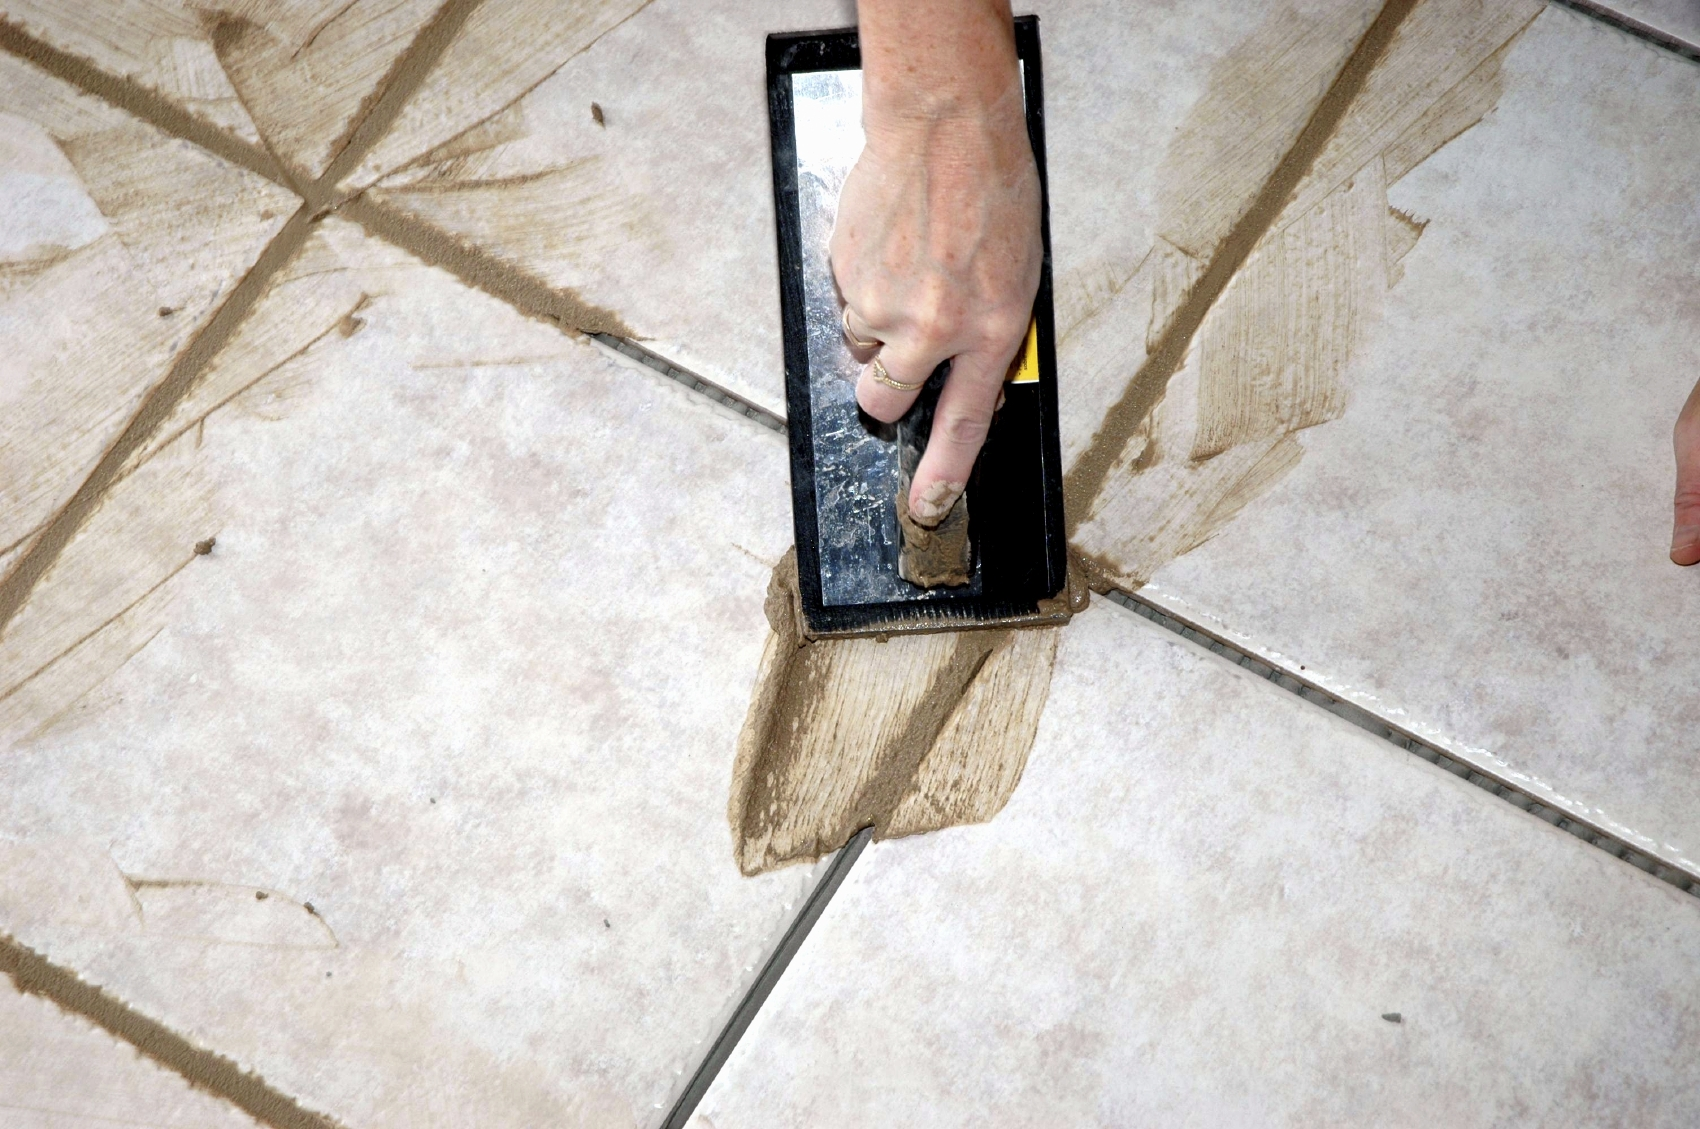 How to clean grout on ceramic tile